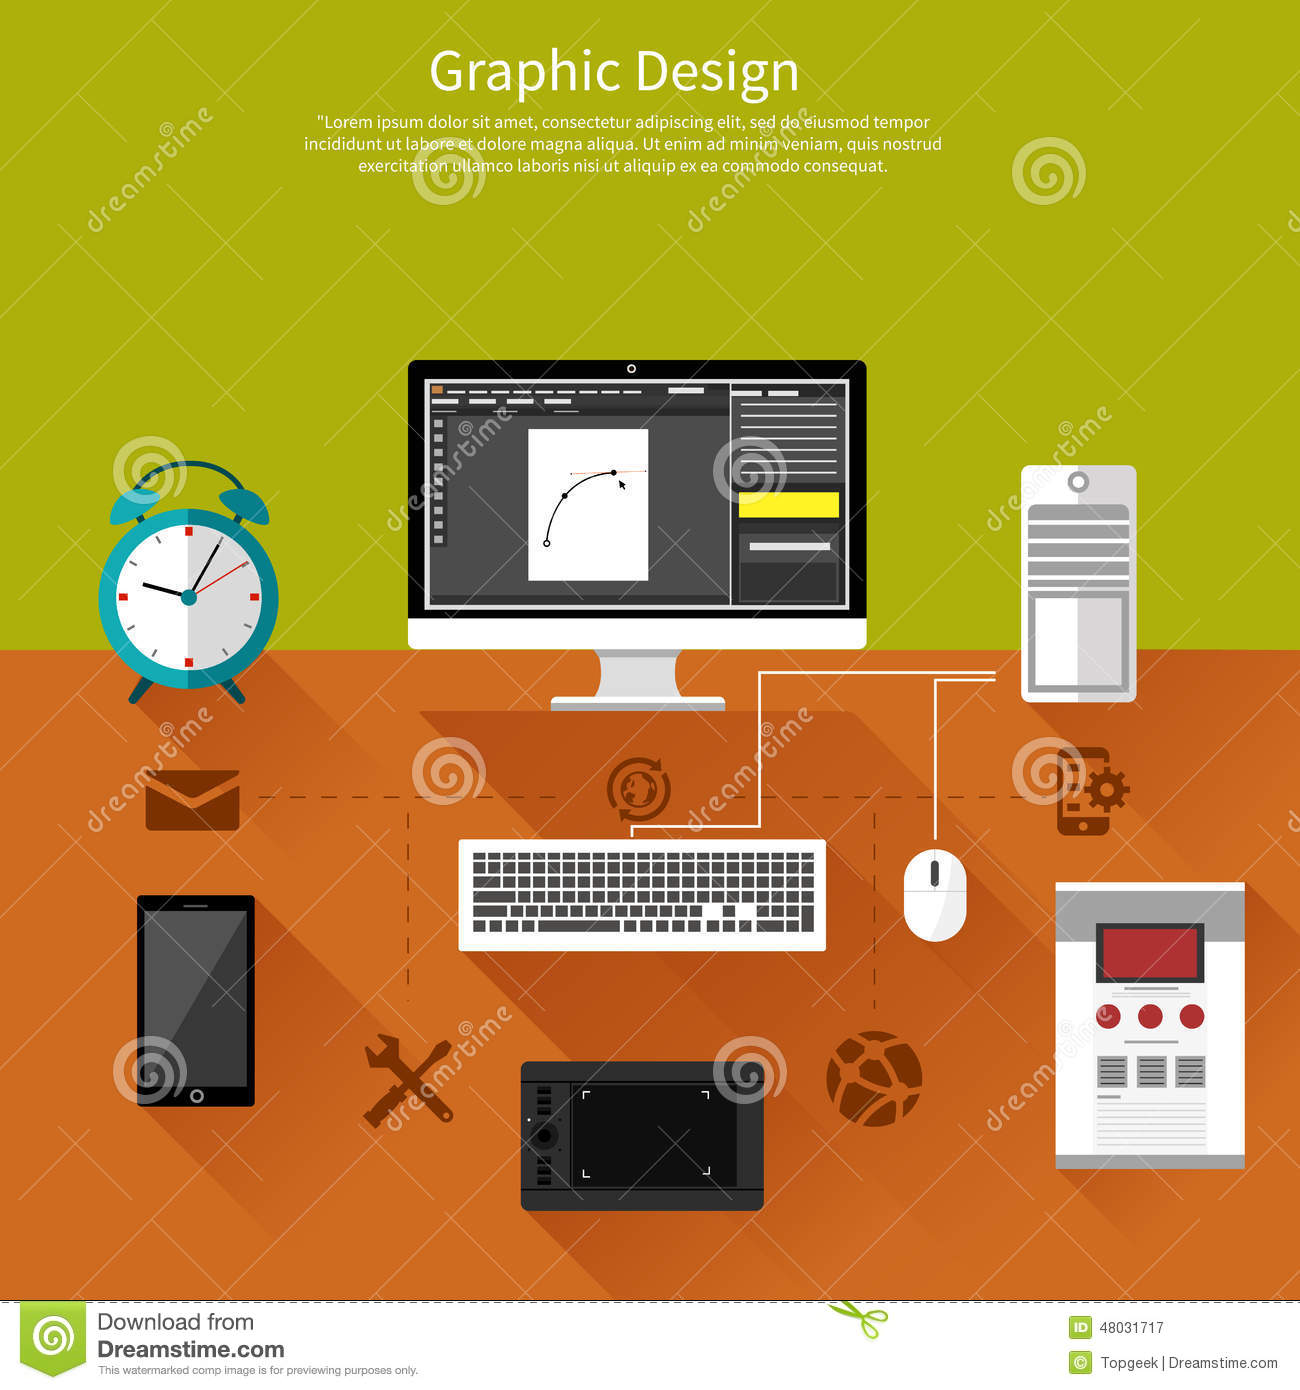 graphic design programs for pc